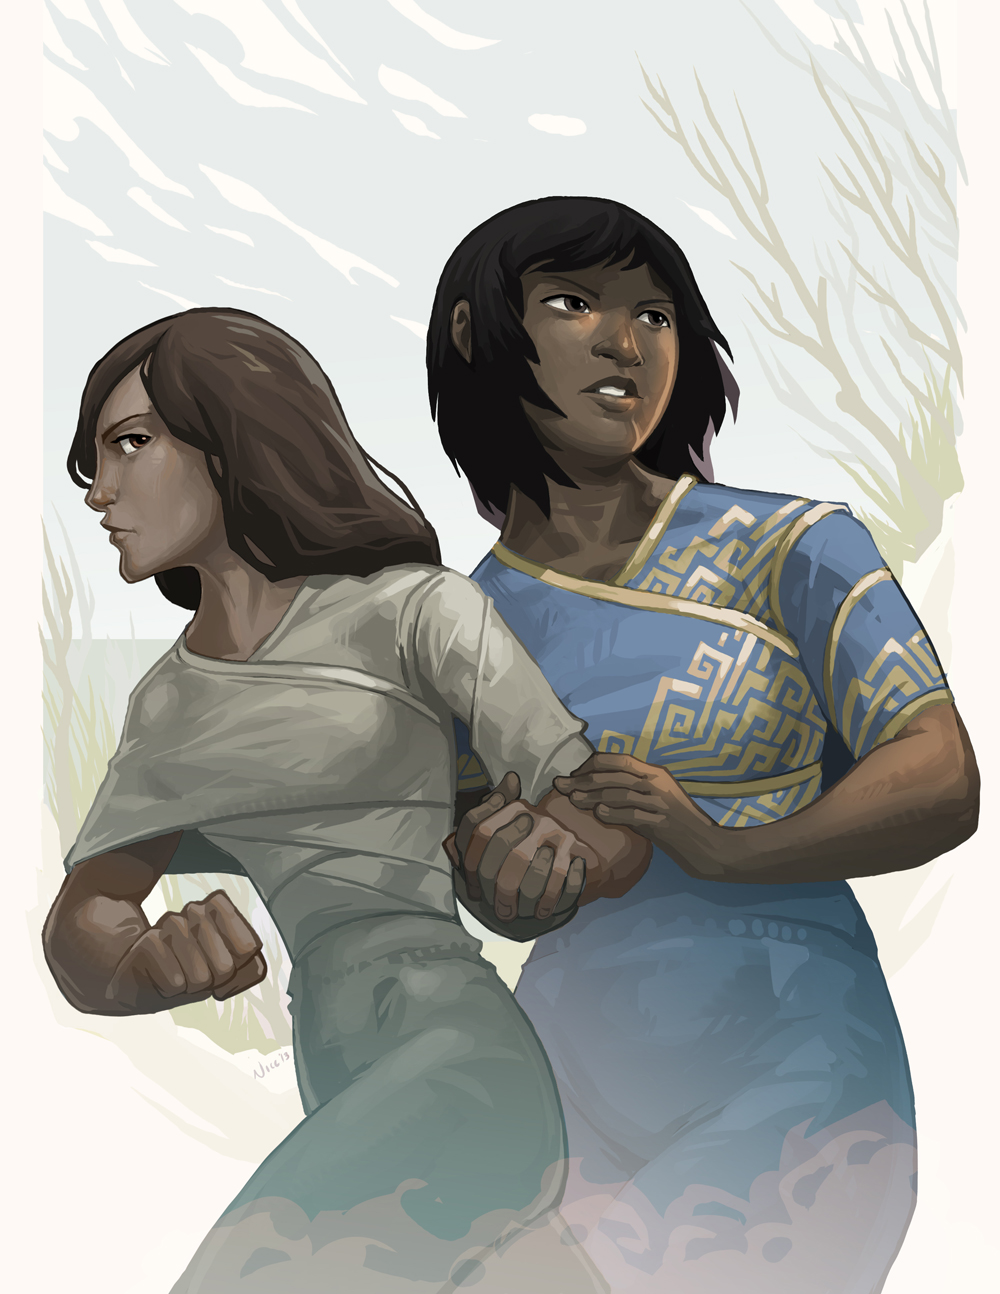 A digital drawing of two teenage girls – one girl determined, thin, with medium-dark skin and long hair, the other girl alert, full-figured, with dark skin and chin-length hair. The second girl is clutching the first girl's arm.